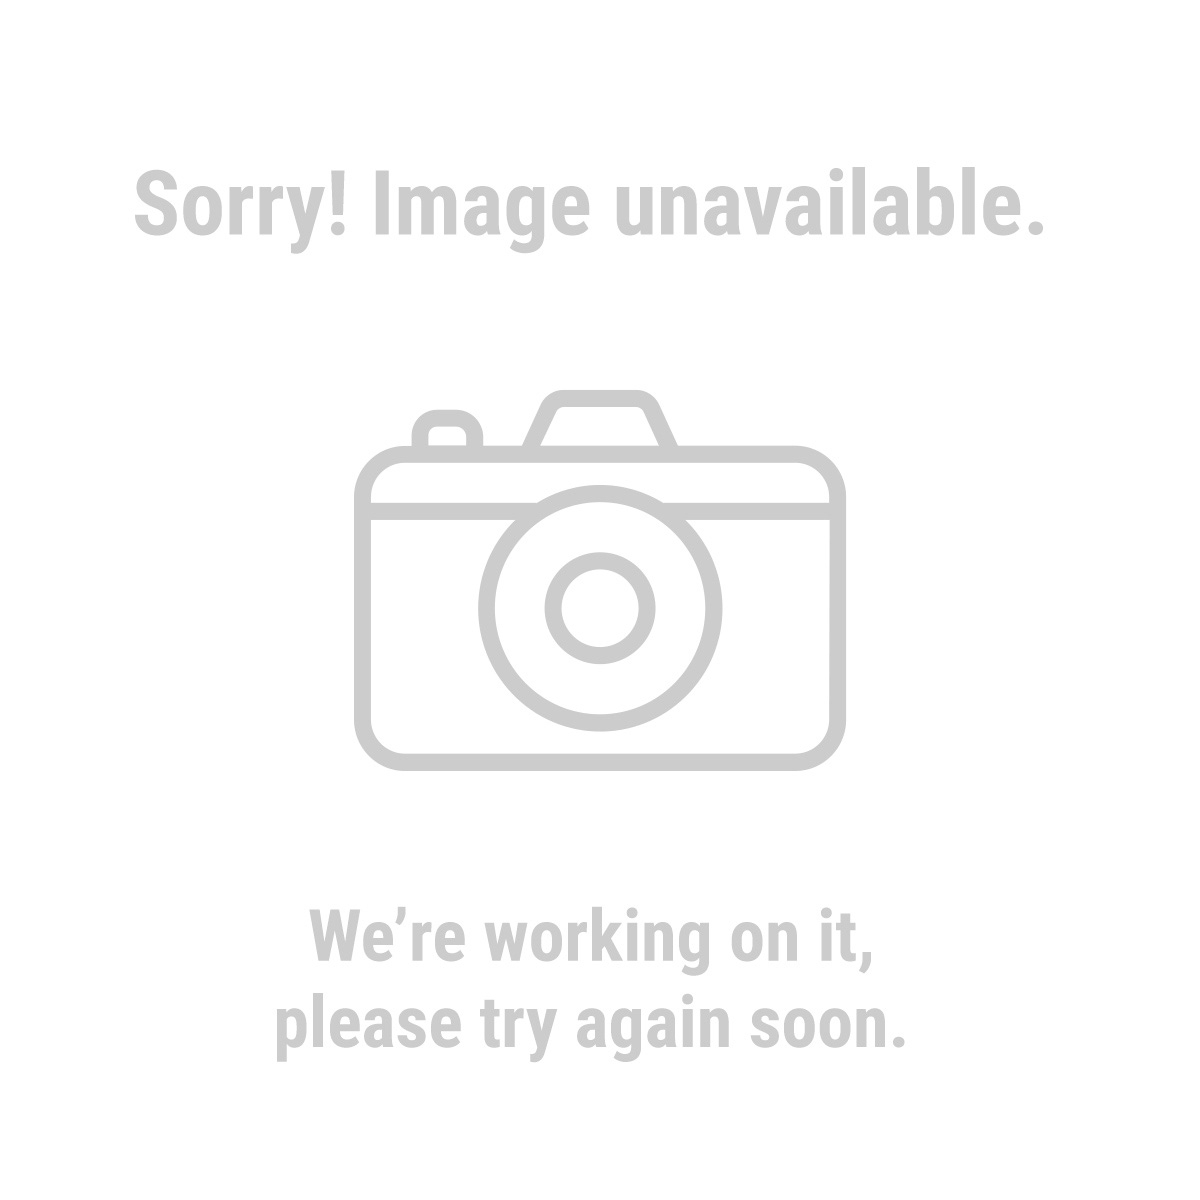 96377 Household Battery Tester